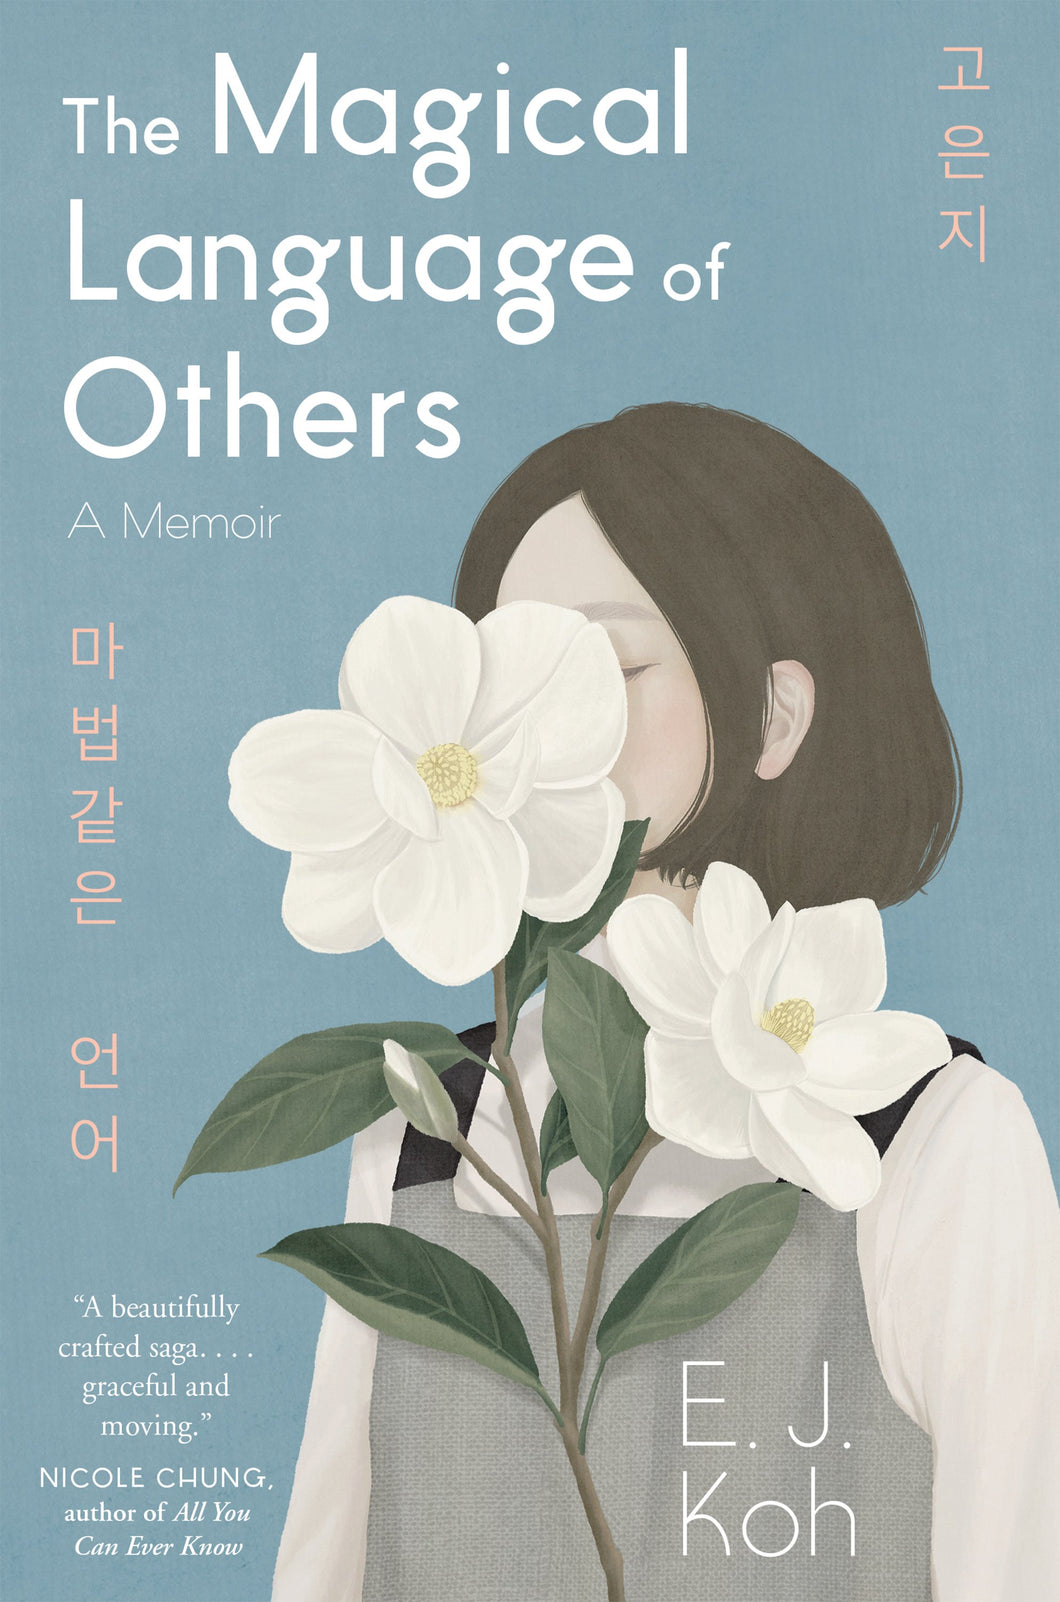 The Magical Language of Others: A Memoir by E.J. Koh